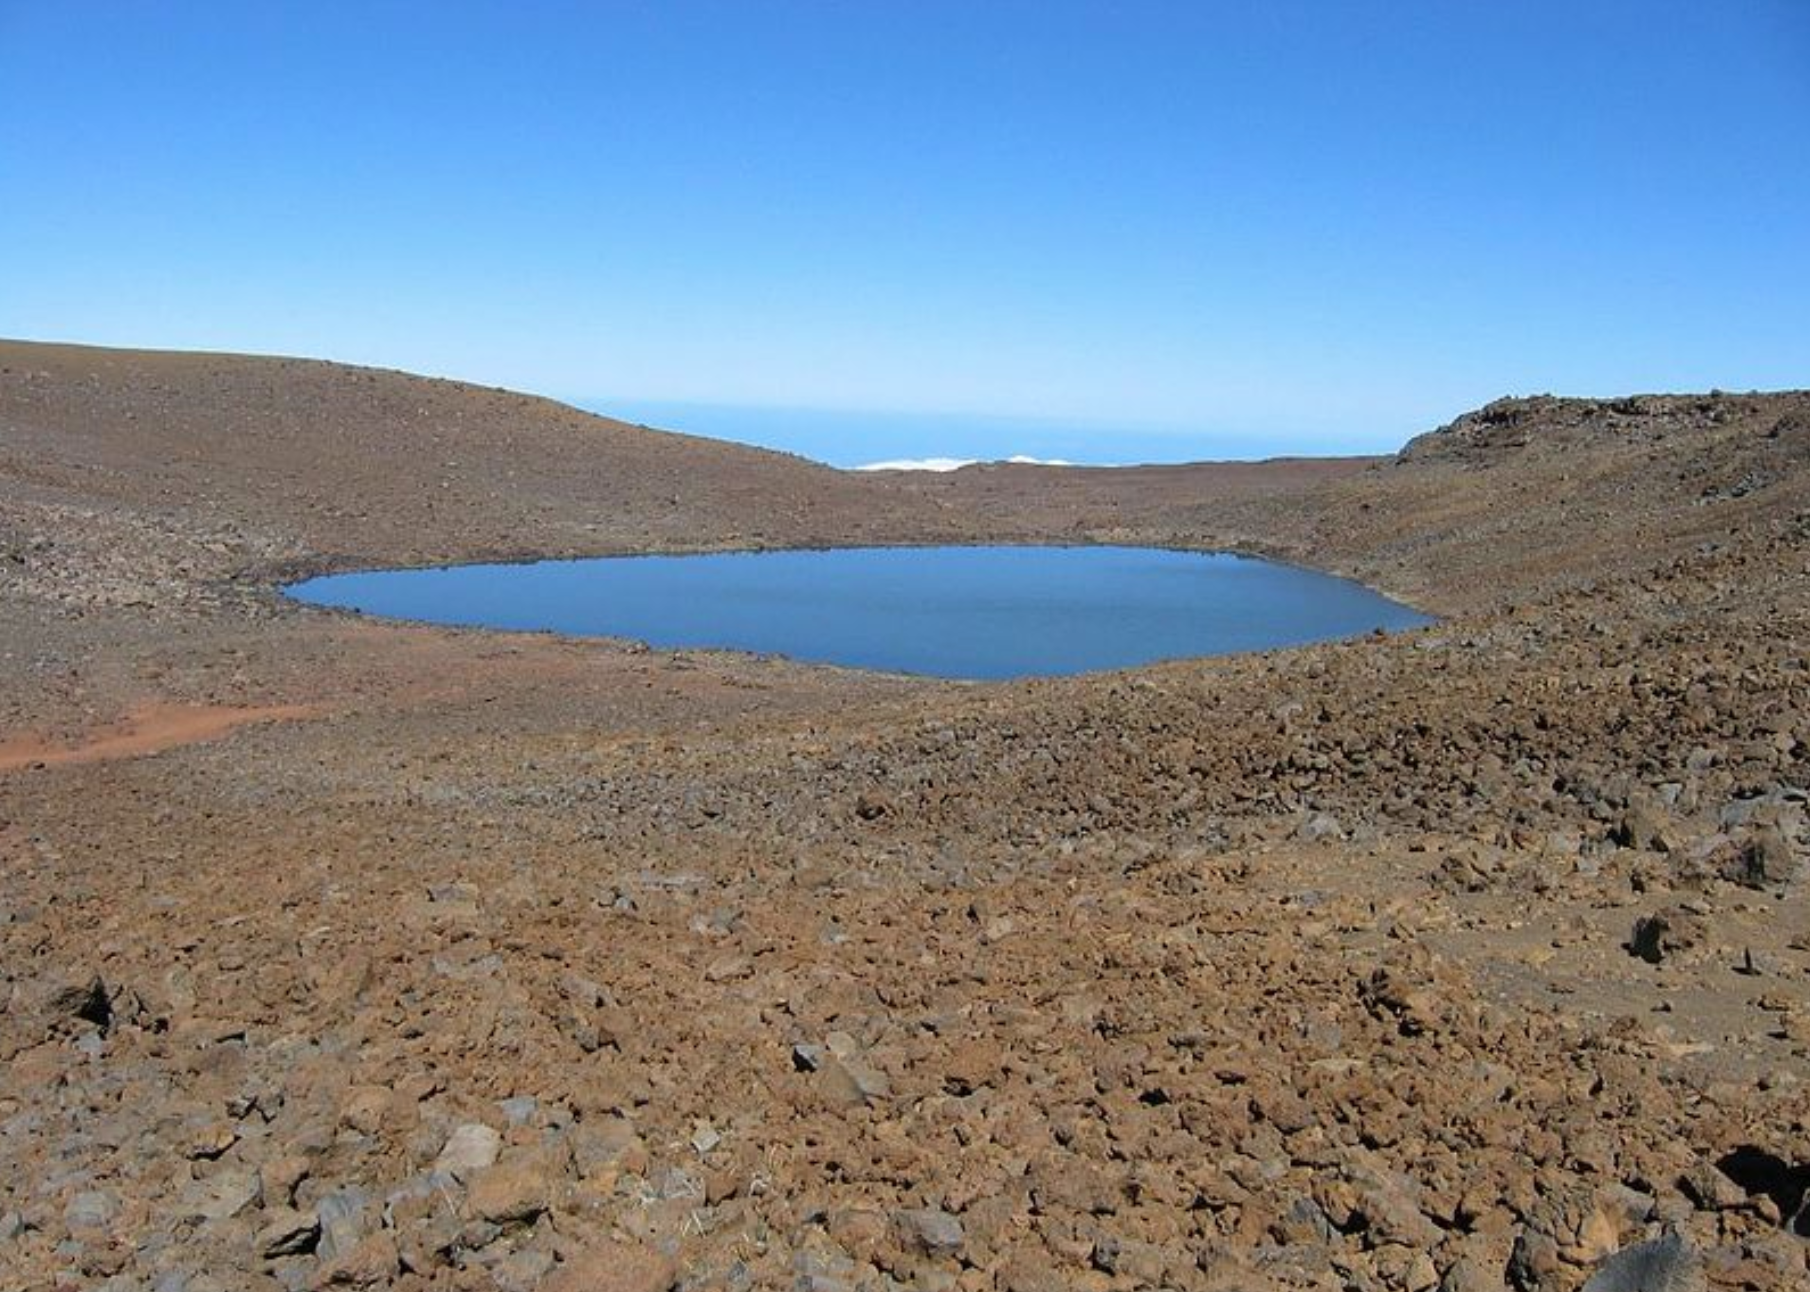 Slide 47 of 52: One of the few lakes in Hawaii, Lake Wa'ia'u is located inside the cinder cone of the dormant volcano Mauna Kea. The contrast between its blue water and the unforgiving volcanic landscape that surrounds it is stunning.